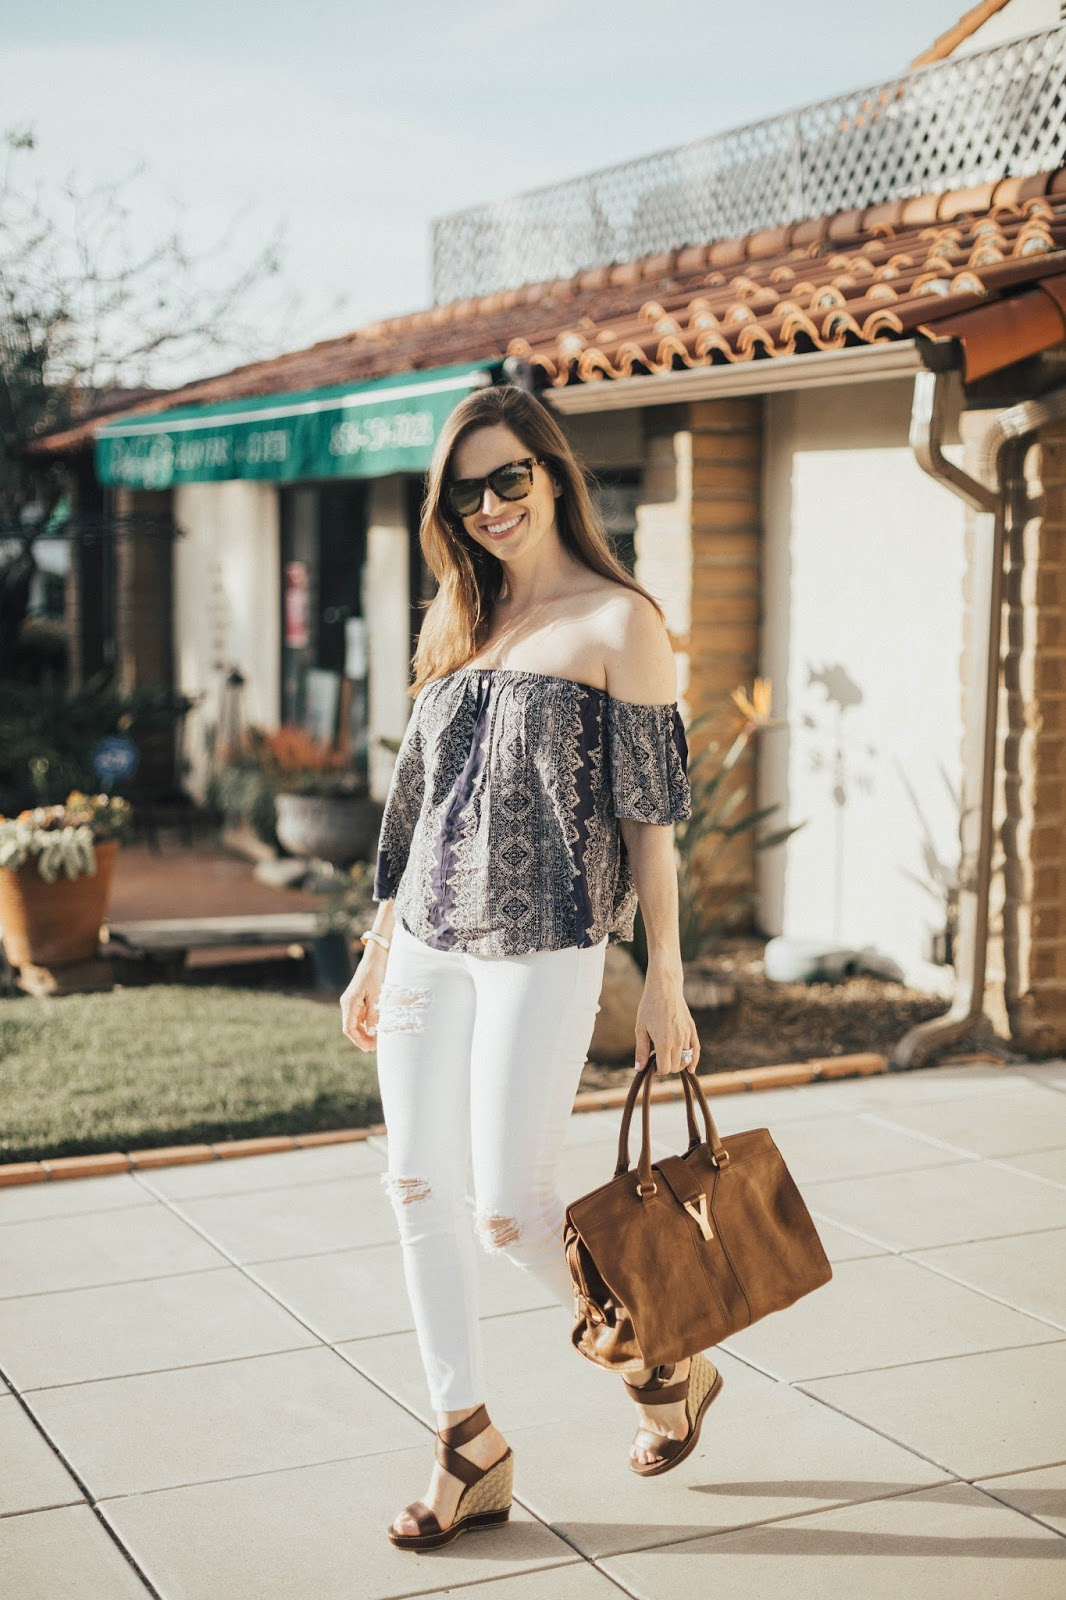 off the shoulder top and white jeans outfit